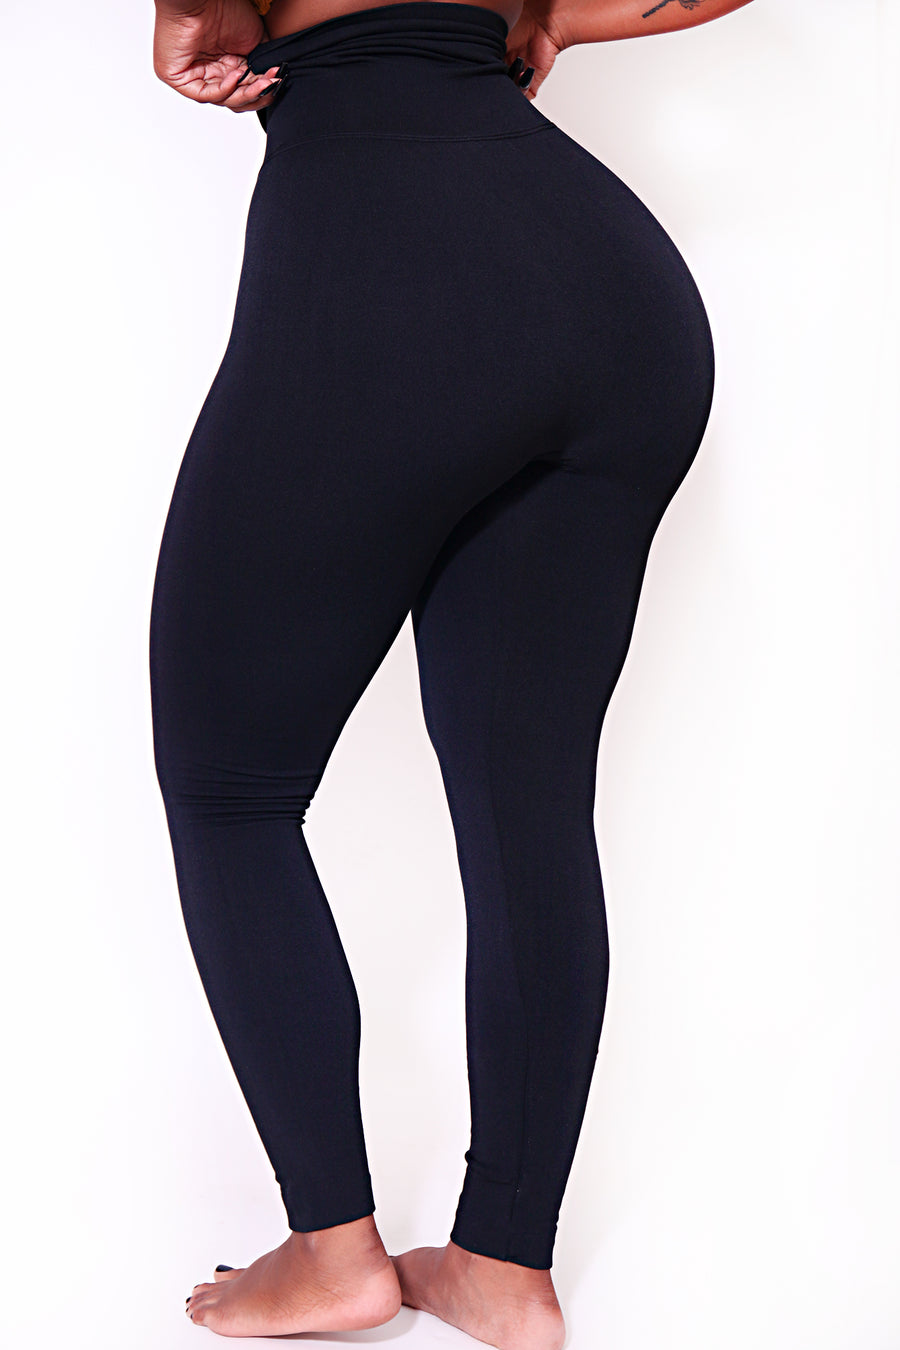 d8a298e6477a4f The Black Yoga Tummy Control Legging fits up to PLUS! (choose your size)